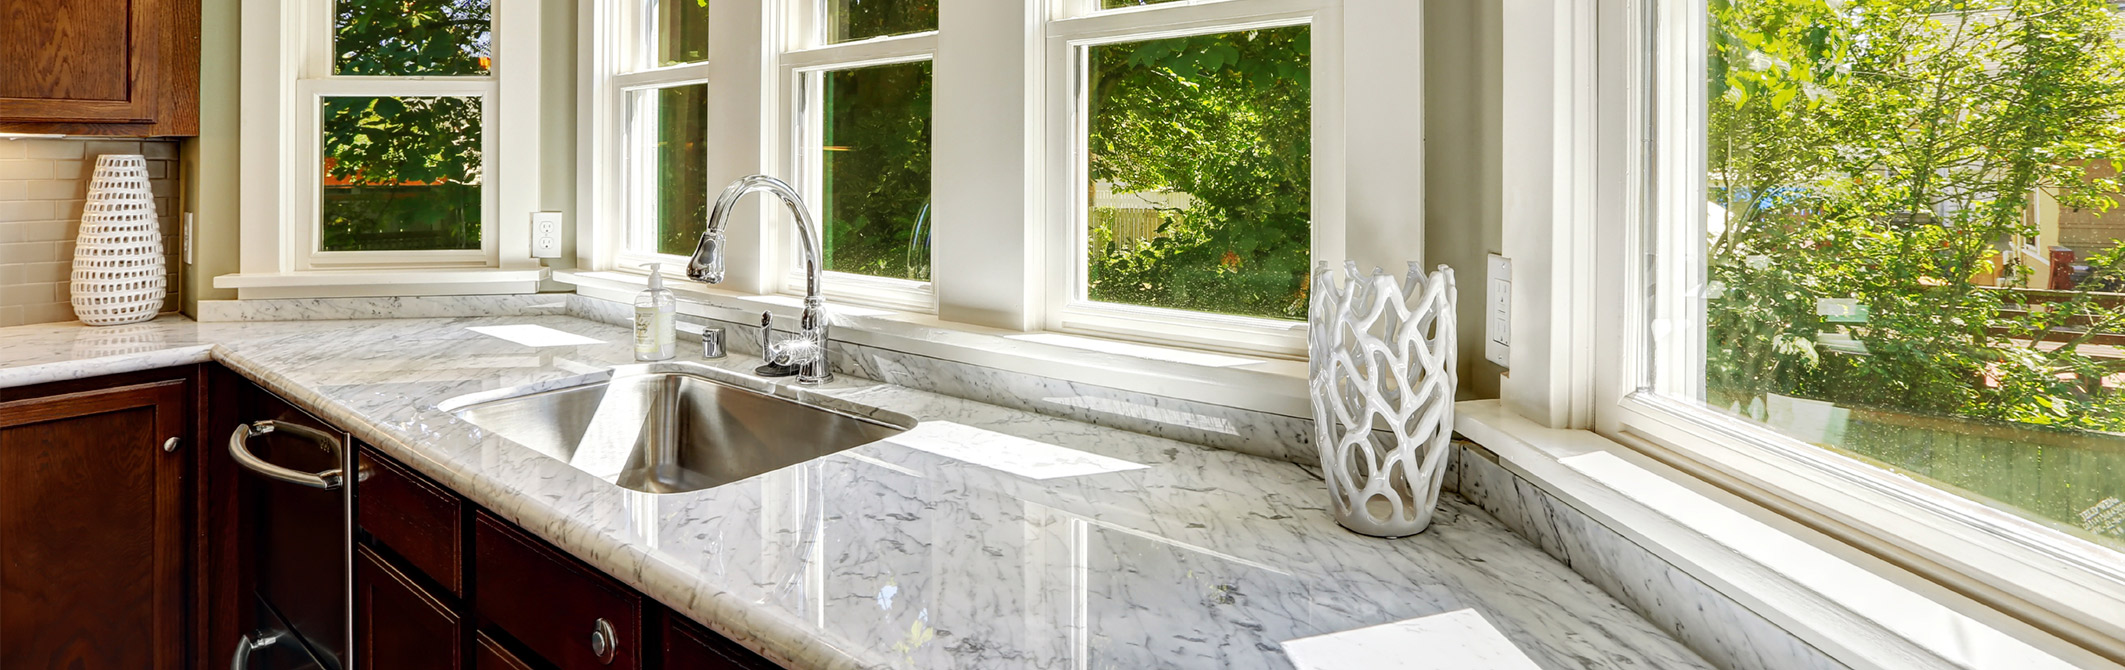 About Centrali Marble